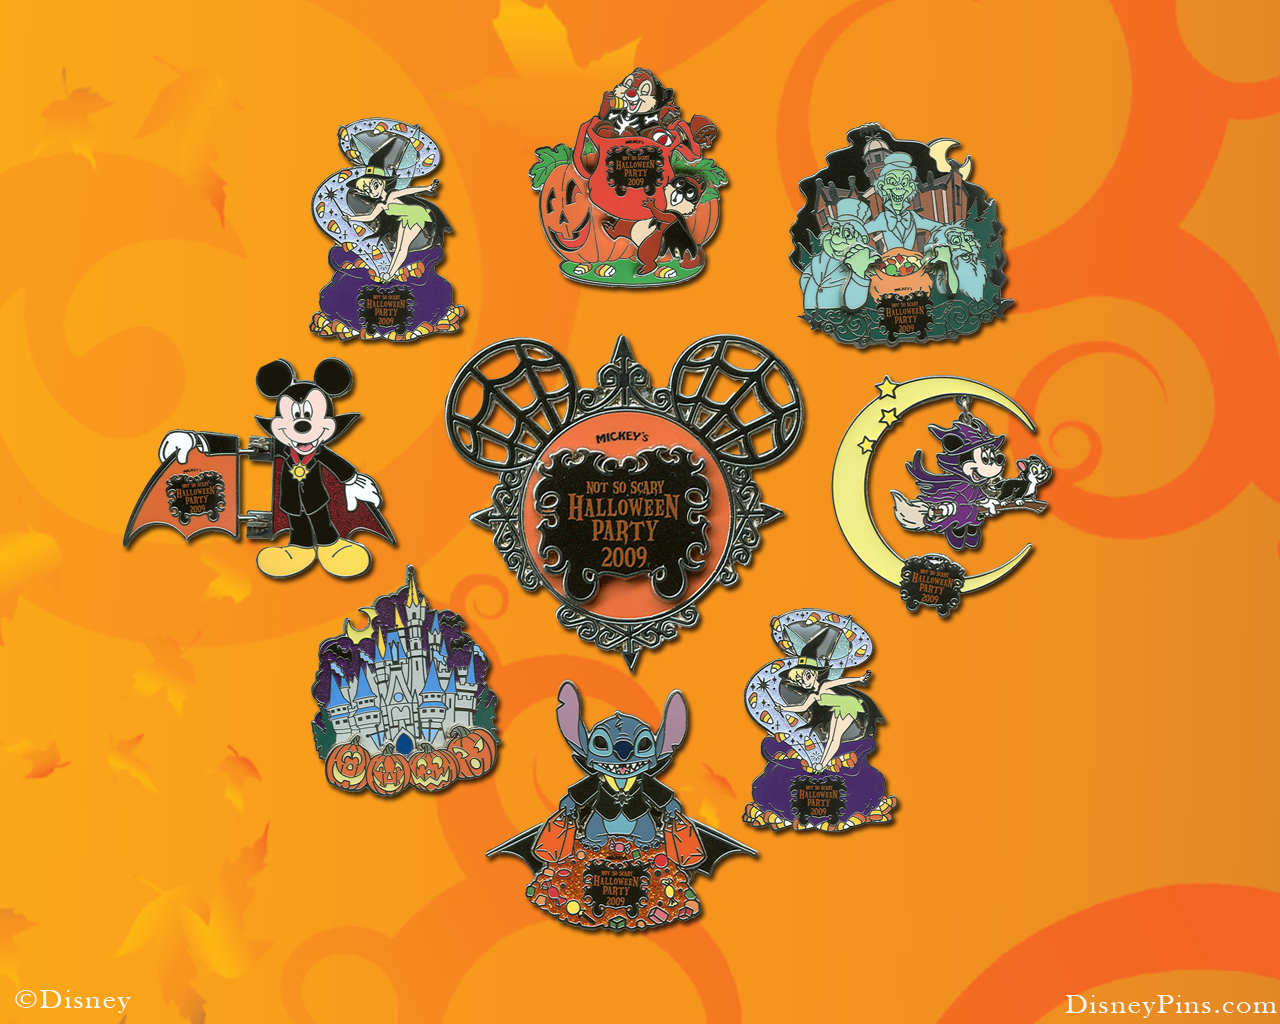 Free Halloween 2013 Backgrounds Wallpapers: Free Desktop Wallpaper: Disney Halloween Wallpaper